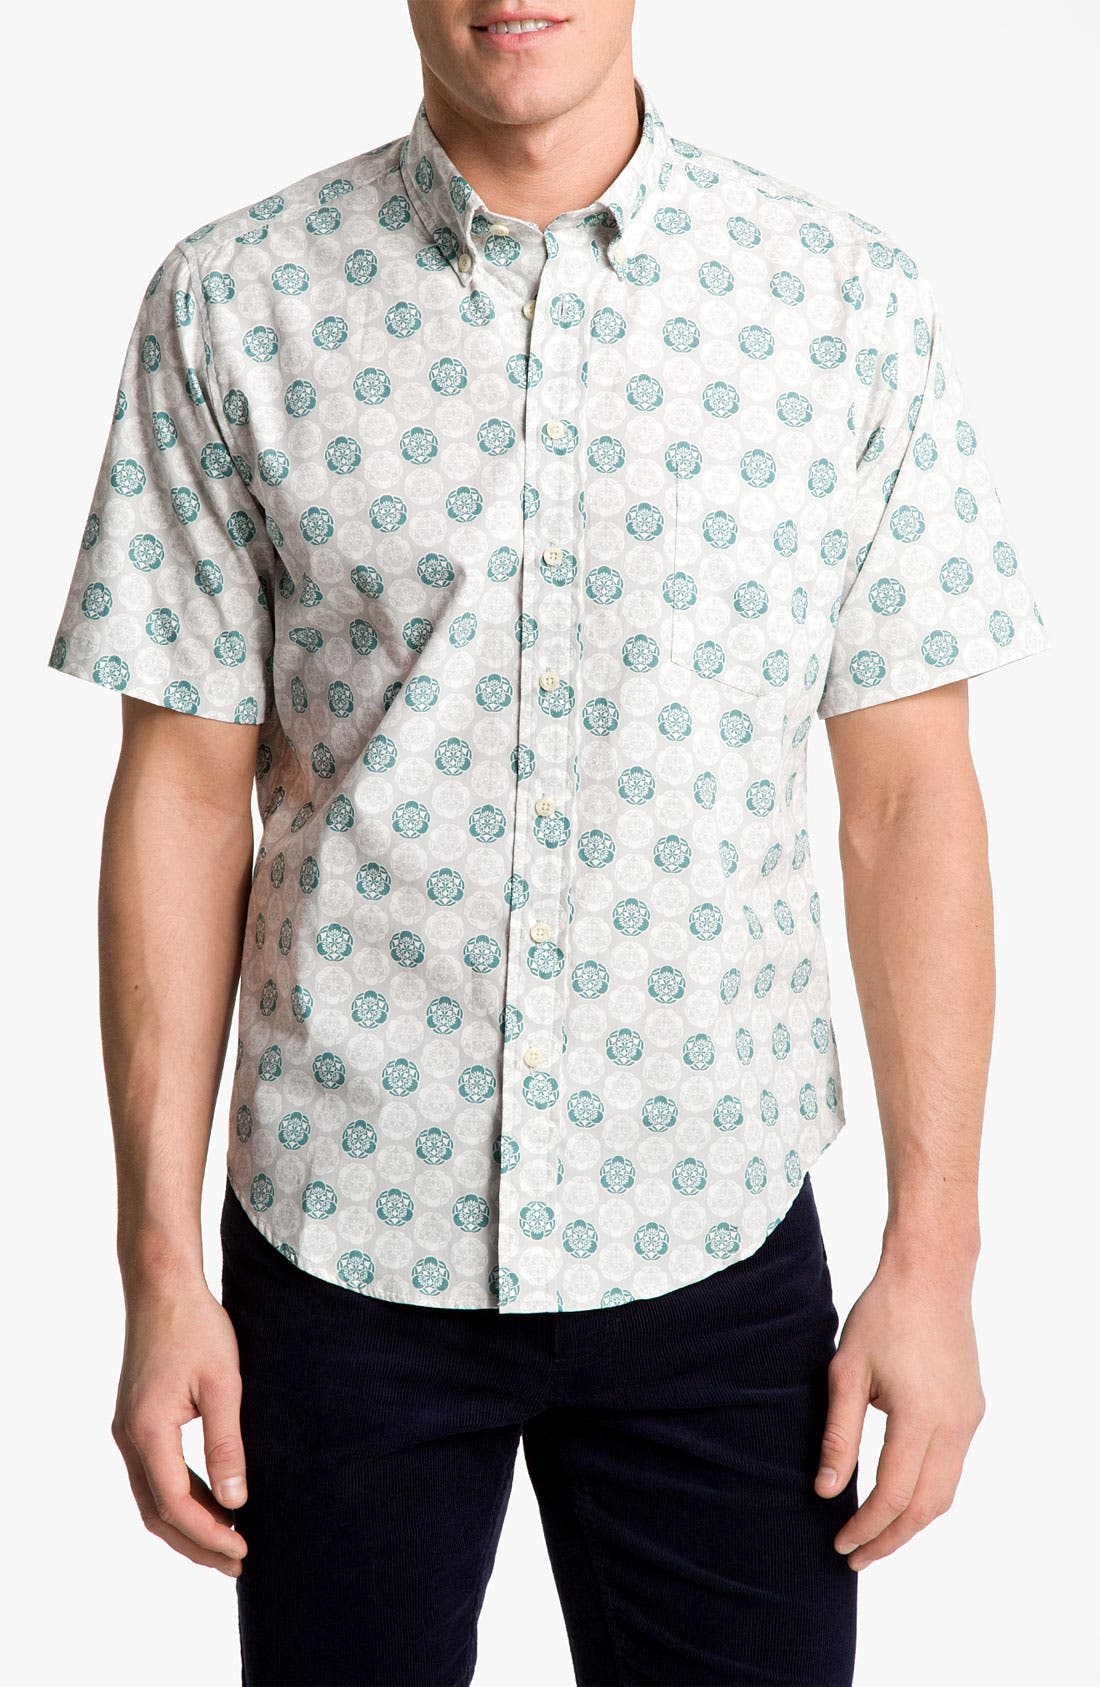 Alternate Image 1 Selected - Reyn Spooner 'Noble Mon' Print Woven Shirt